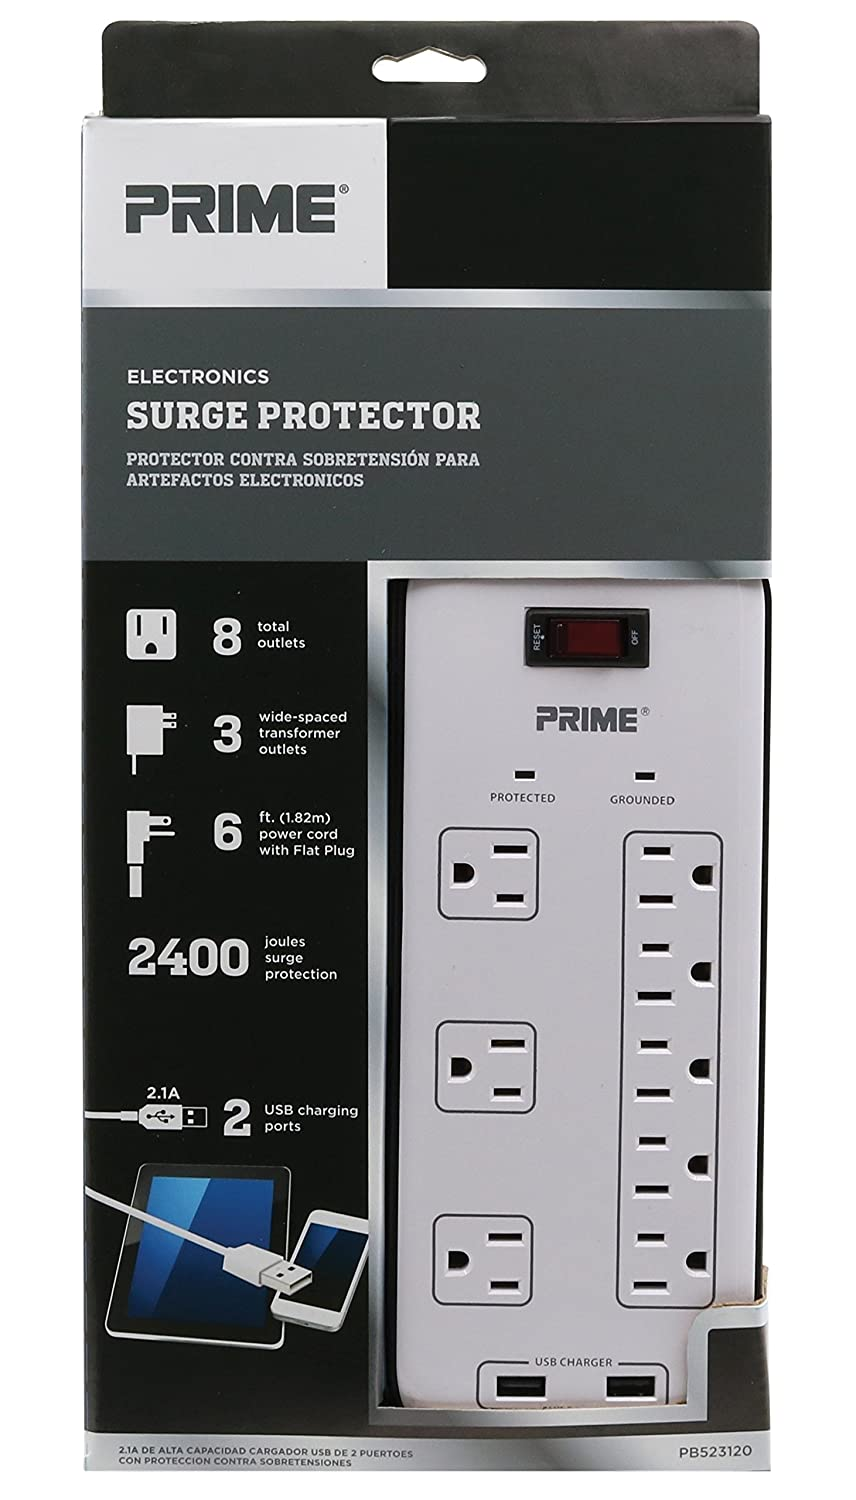 Amazon.com: Prime Wire & Cable PB523120 8-Outlet Electronics Surge Protector with 14-3 SJT 6-Feet Cord, White: Home Improvement